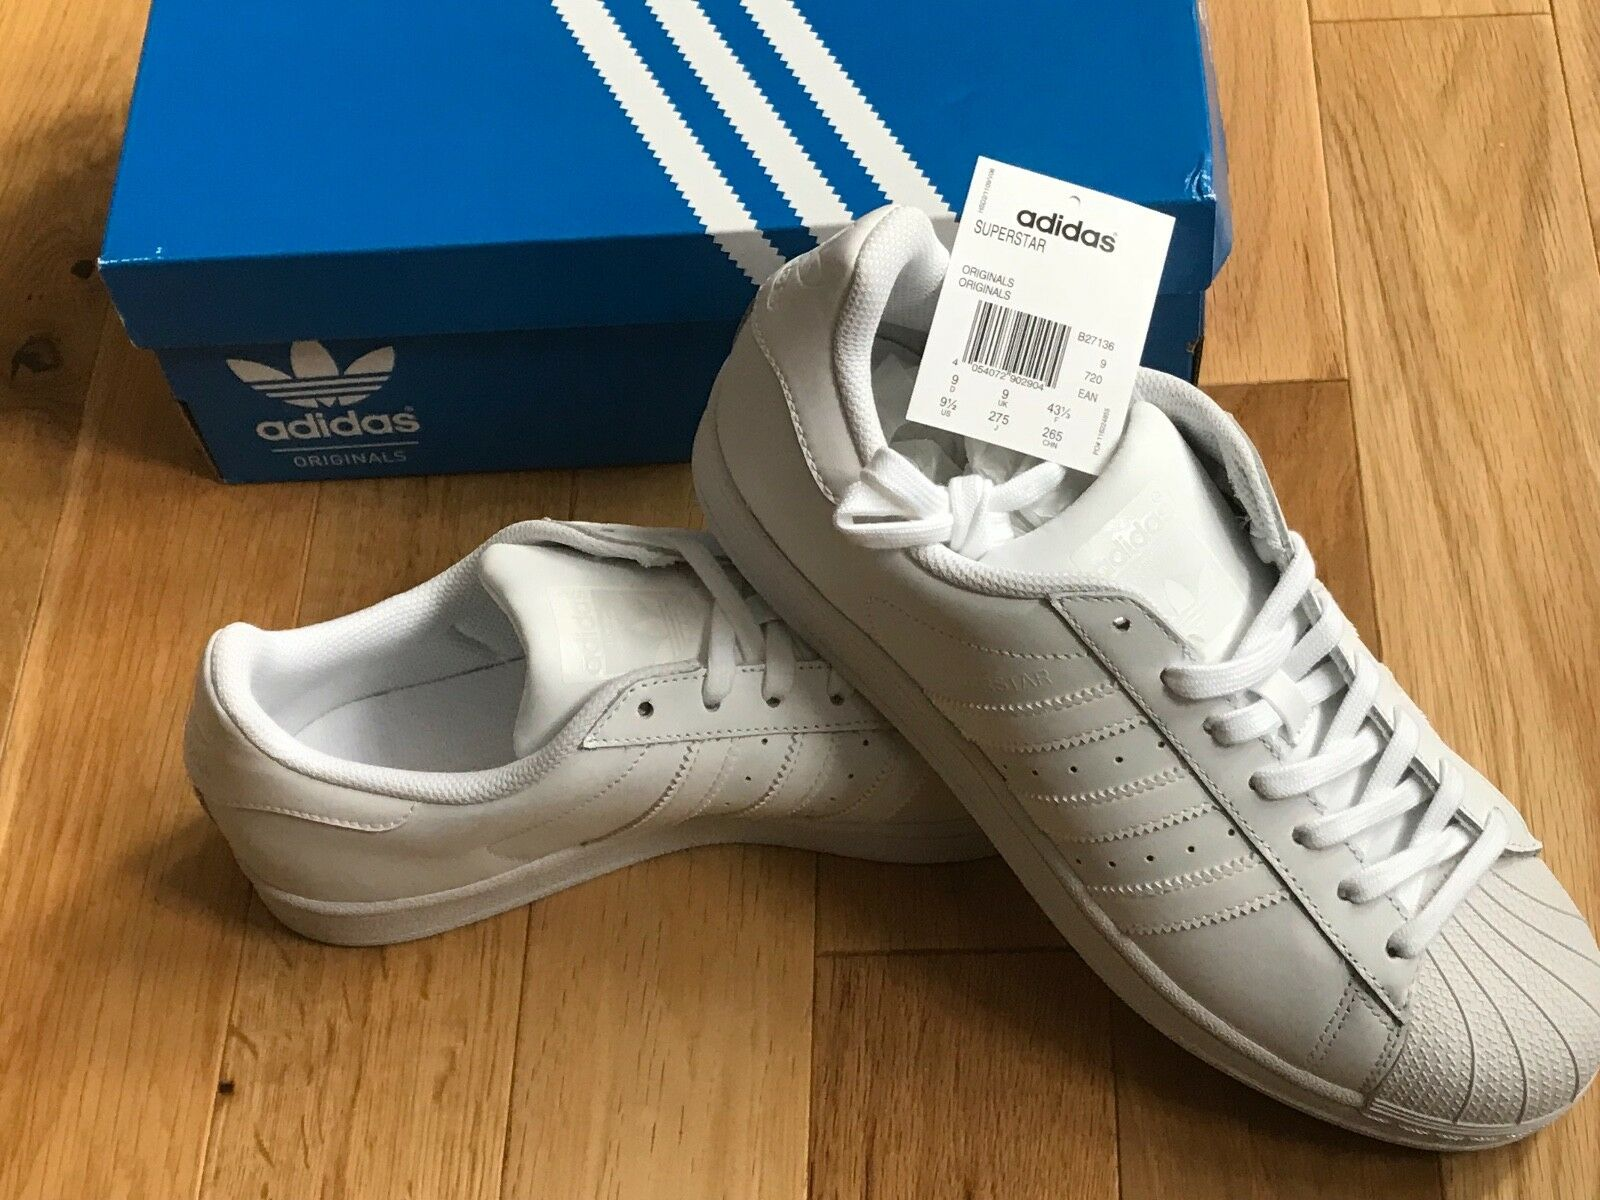 ADIDAS CLASSIC ORIGINALS  Herren SUPERSTAR FOUNDATION Weiß B27136 CLASSIC ADIDAS TRAINERS UK 7.5 df69a8